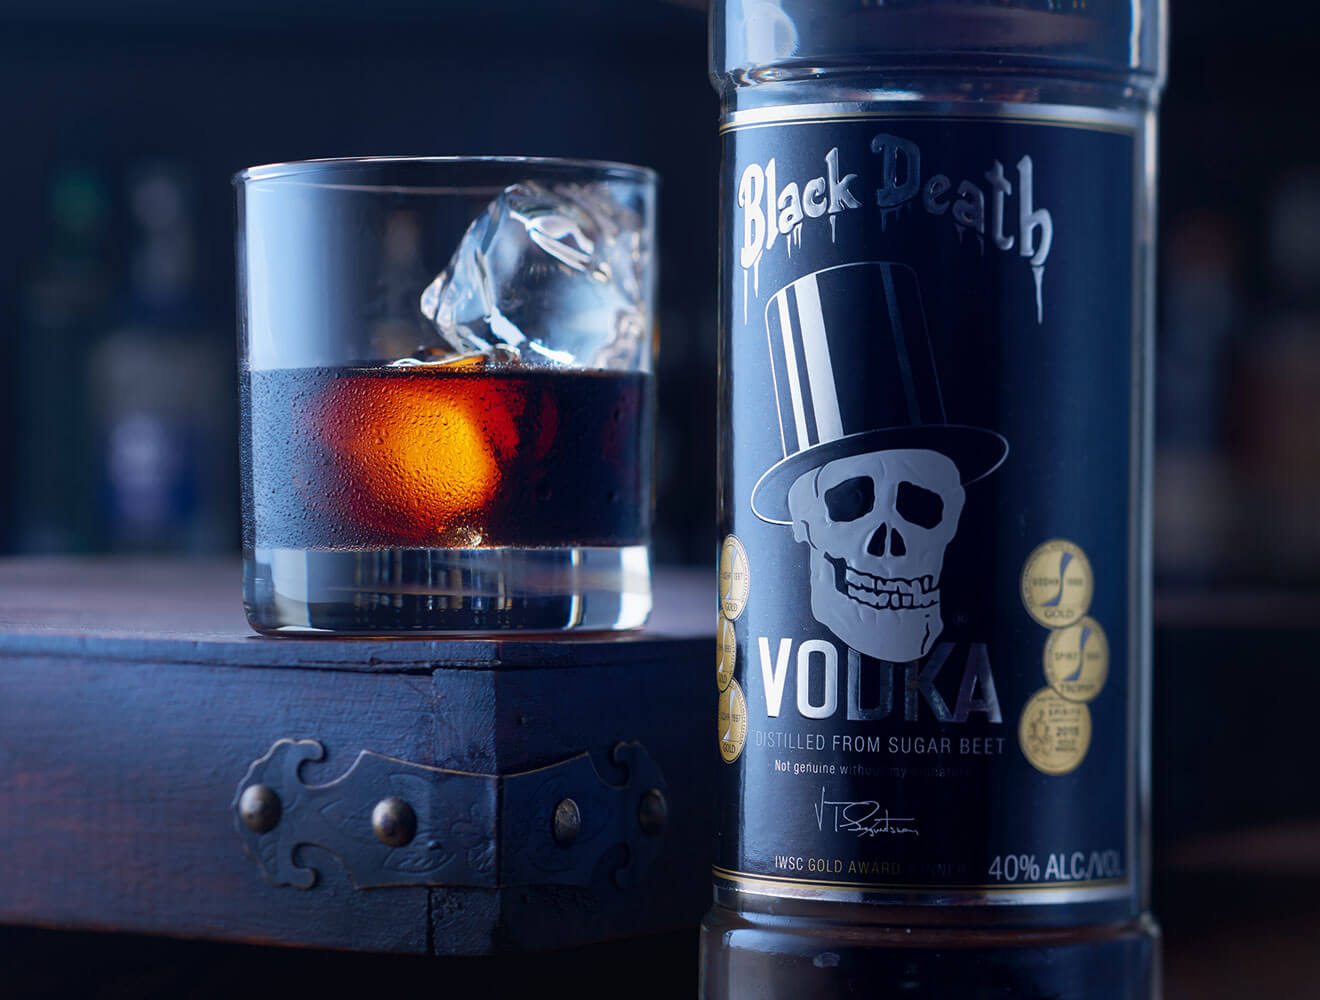 Black Russian - Black Death Vodka